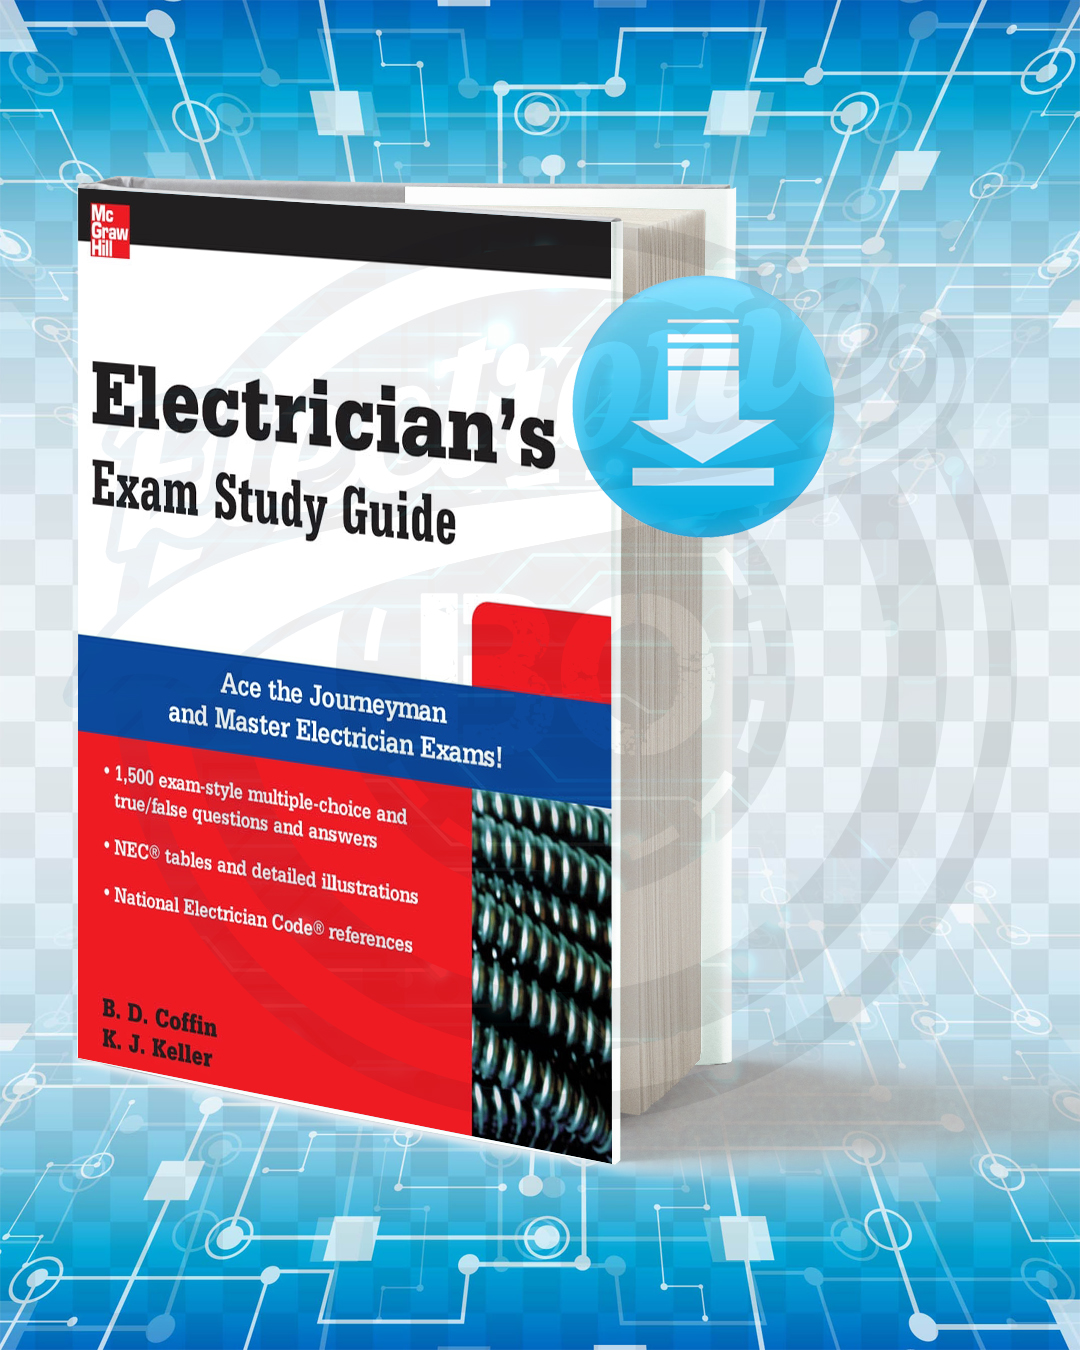 Free Book Electrician's Exam Study Guide pdf.